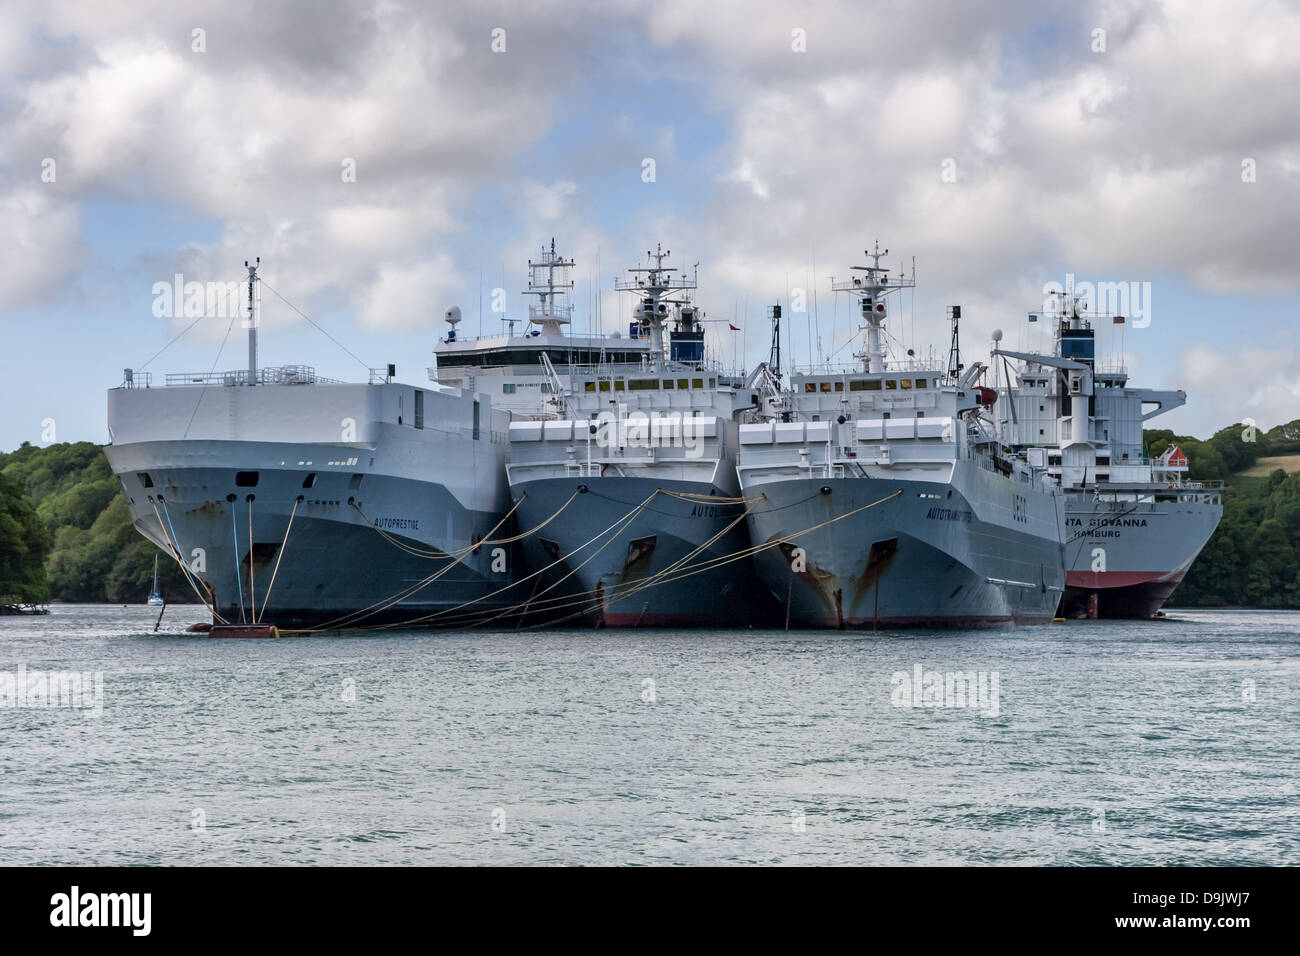 Laid up ships on the River Fal in Falmouth, Cornwall - Stock Image